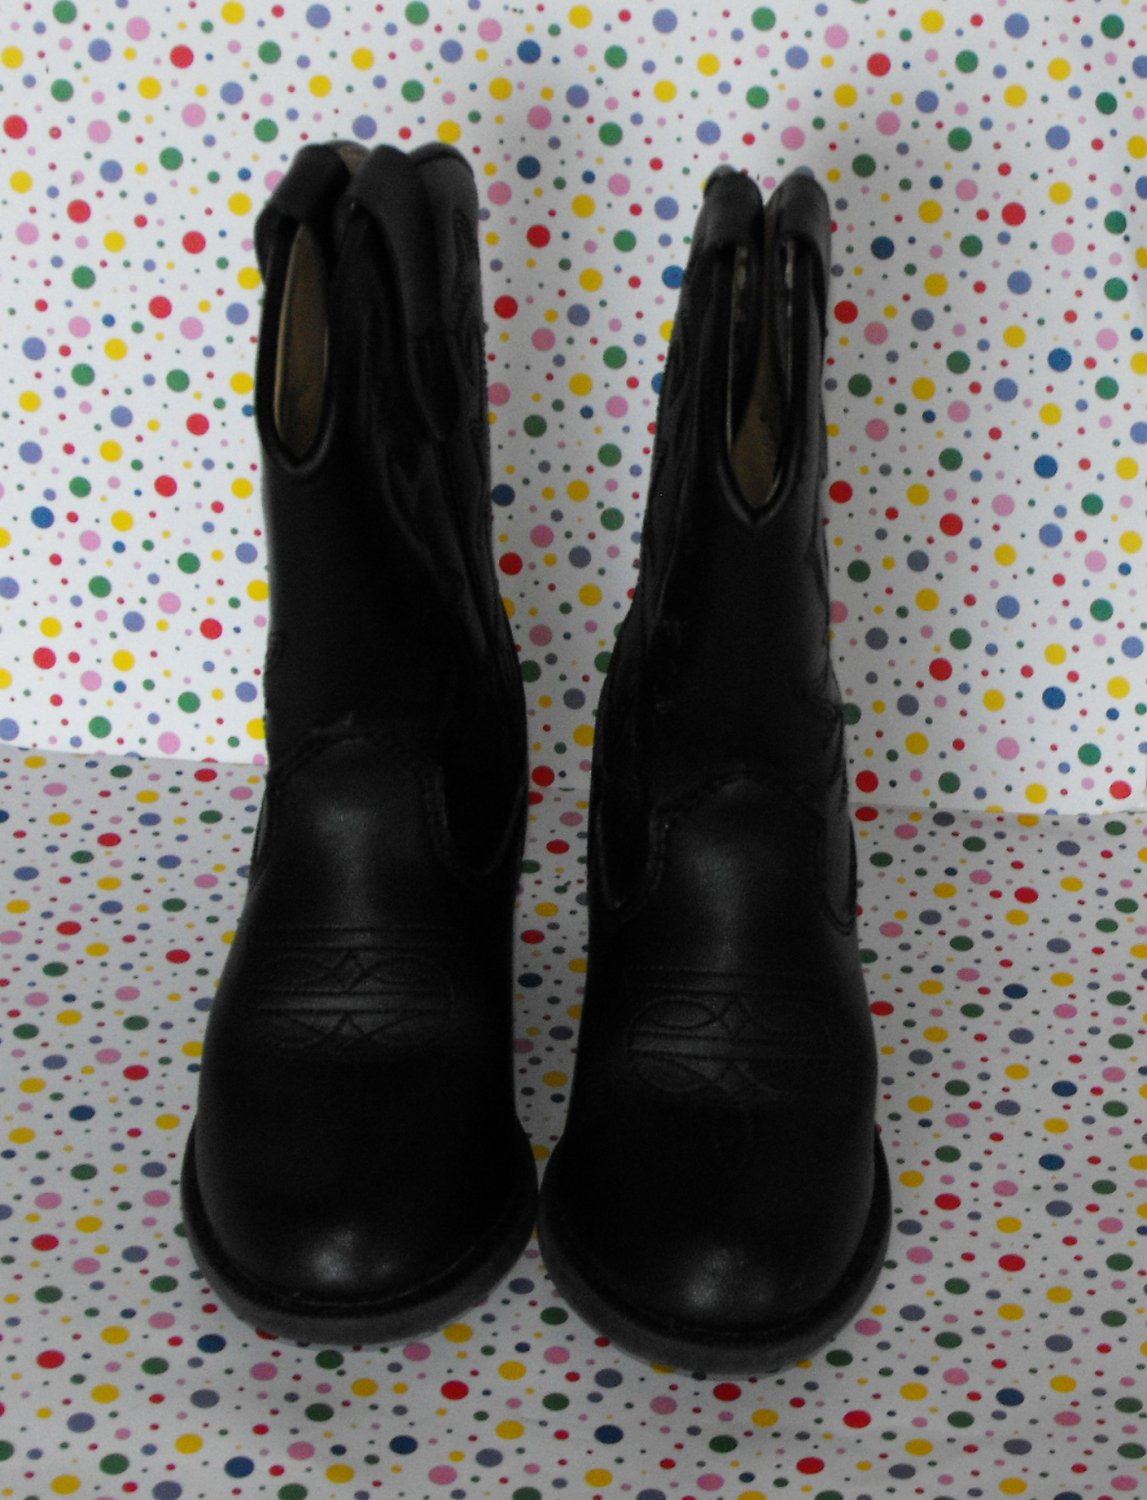 *7/13*SOLD~Toddler Black Cowboy Boots Size 10 Costume Faded Glory